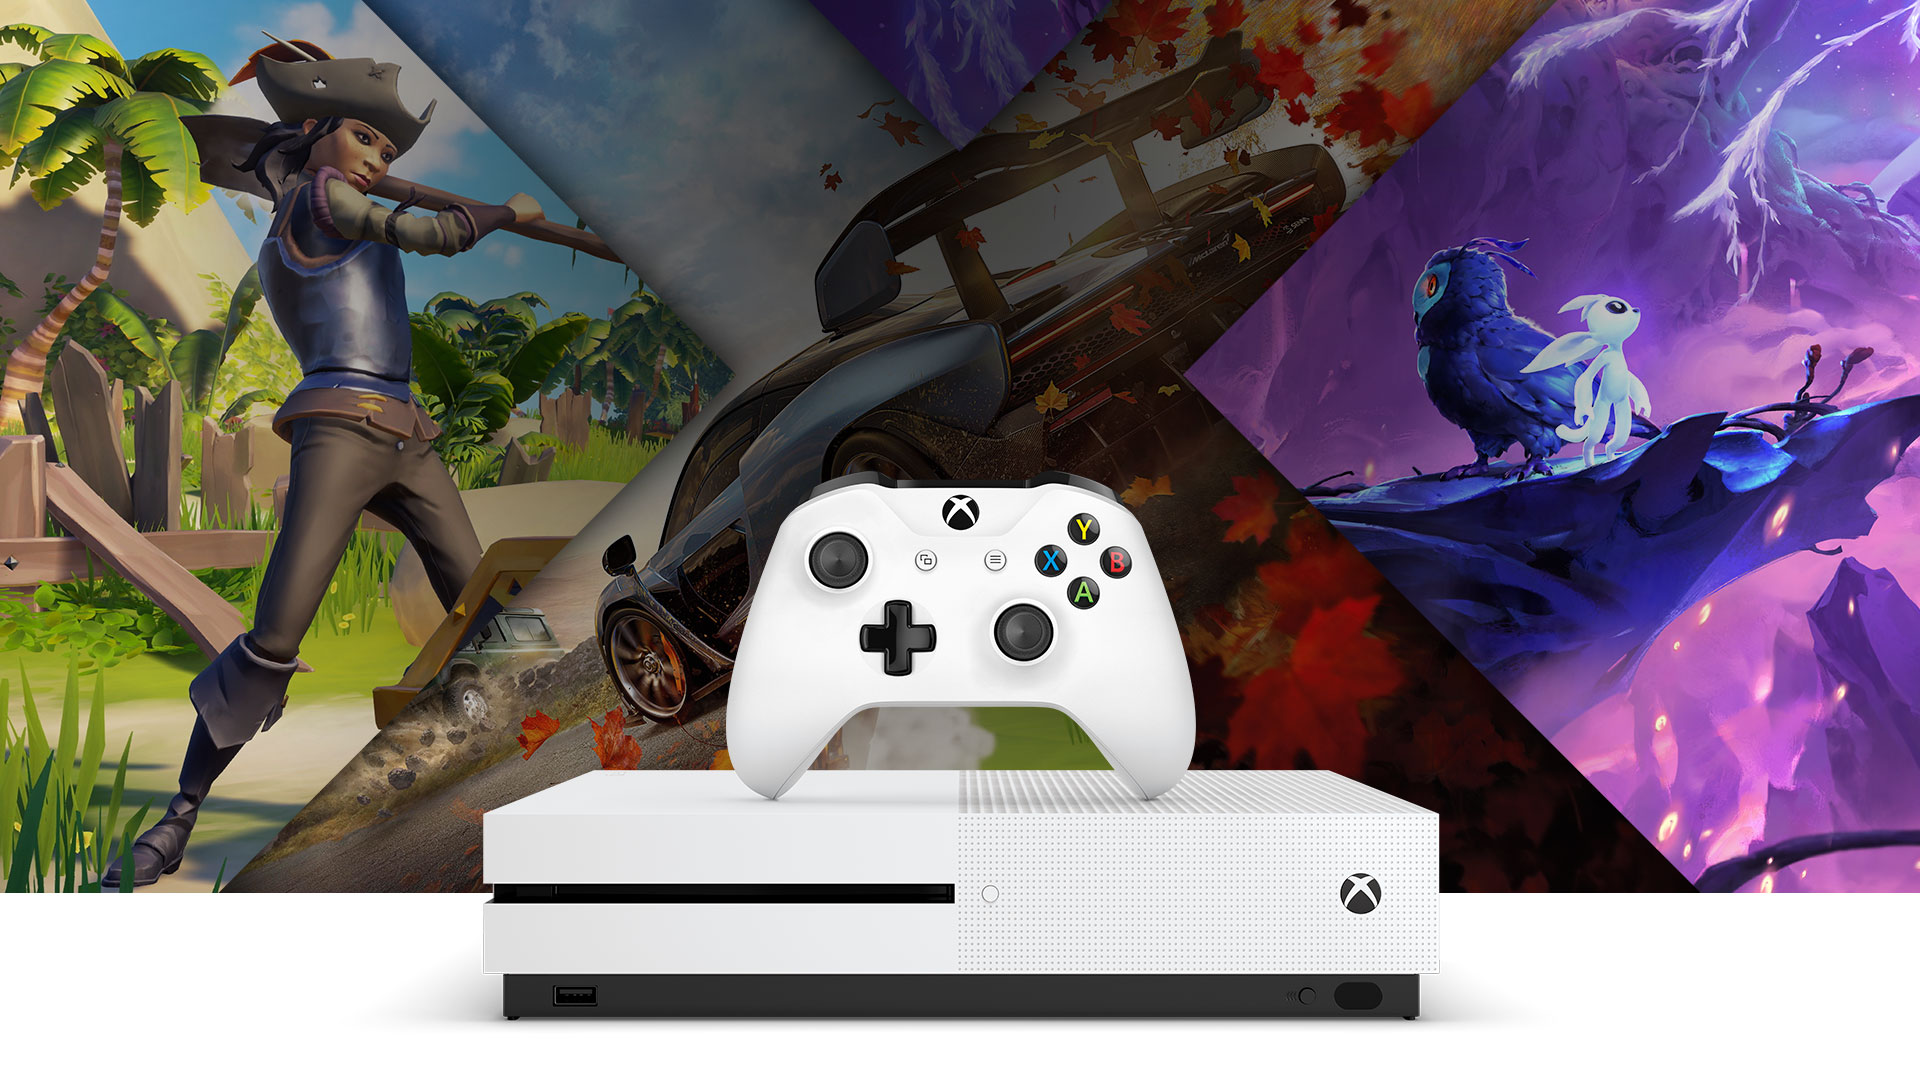 Front view of Xbox One S and White Wireless Controller surrounded by Sea of Thieves, Forza Horizon 4, Ori and the Will of Wisps artwork